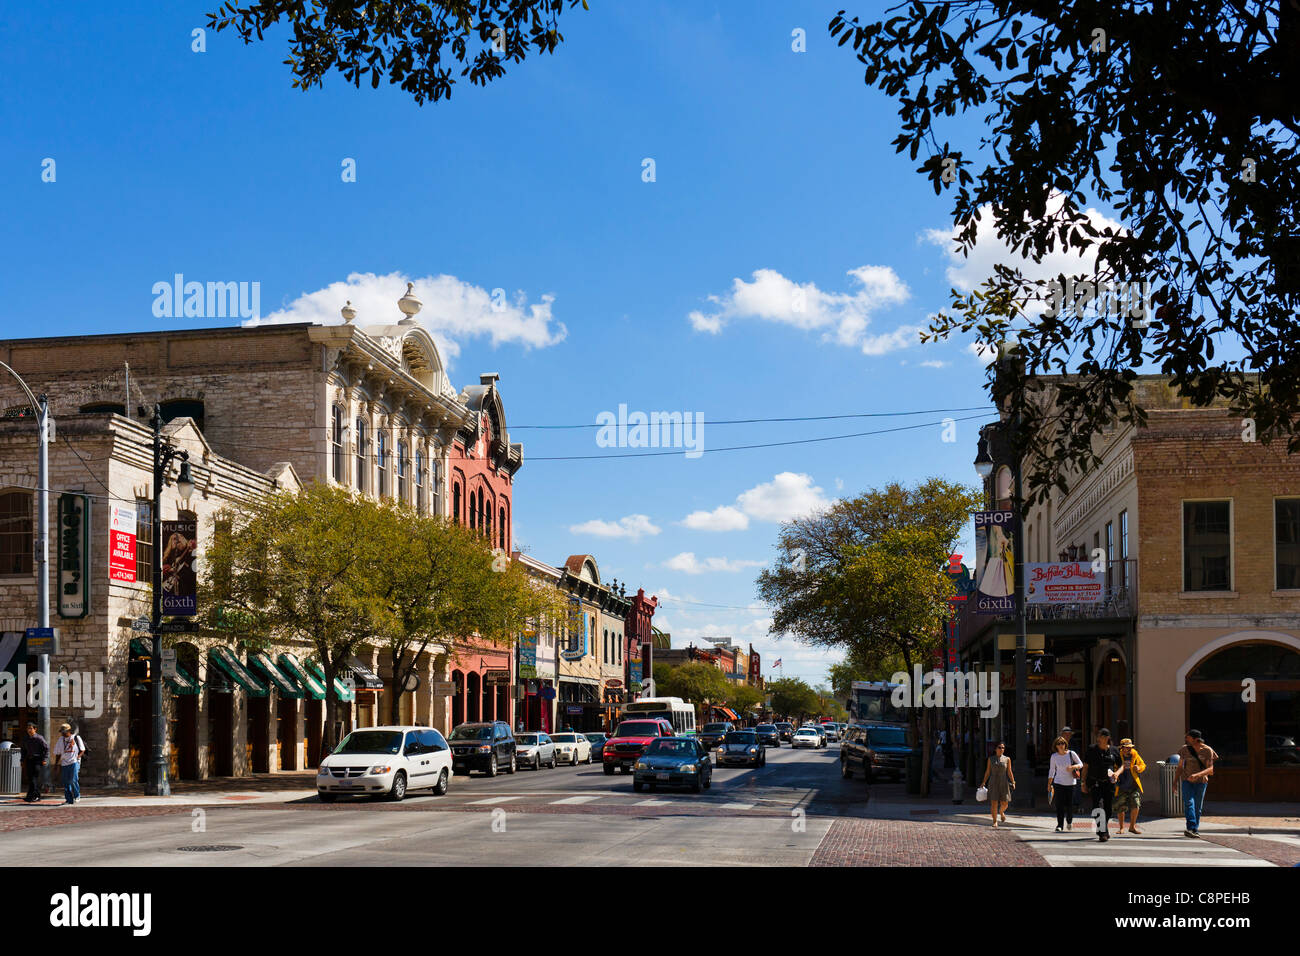 Bars and restaurants on East 6th Street in historic downtown Austin, Texas, USA - Stock Image